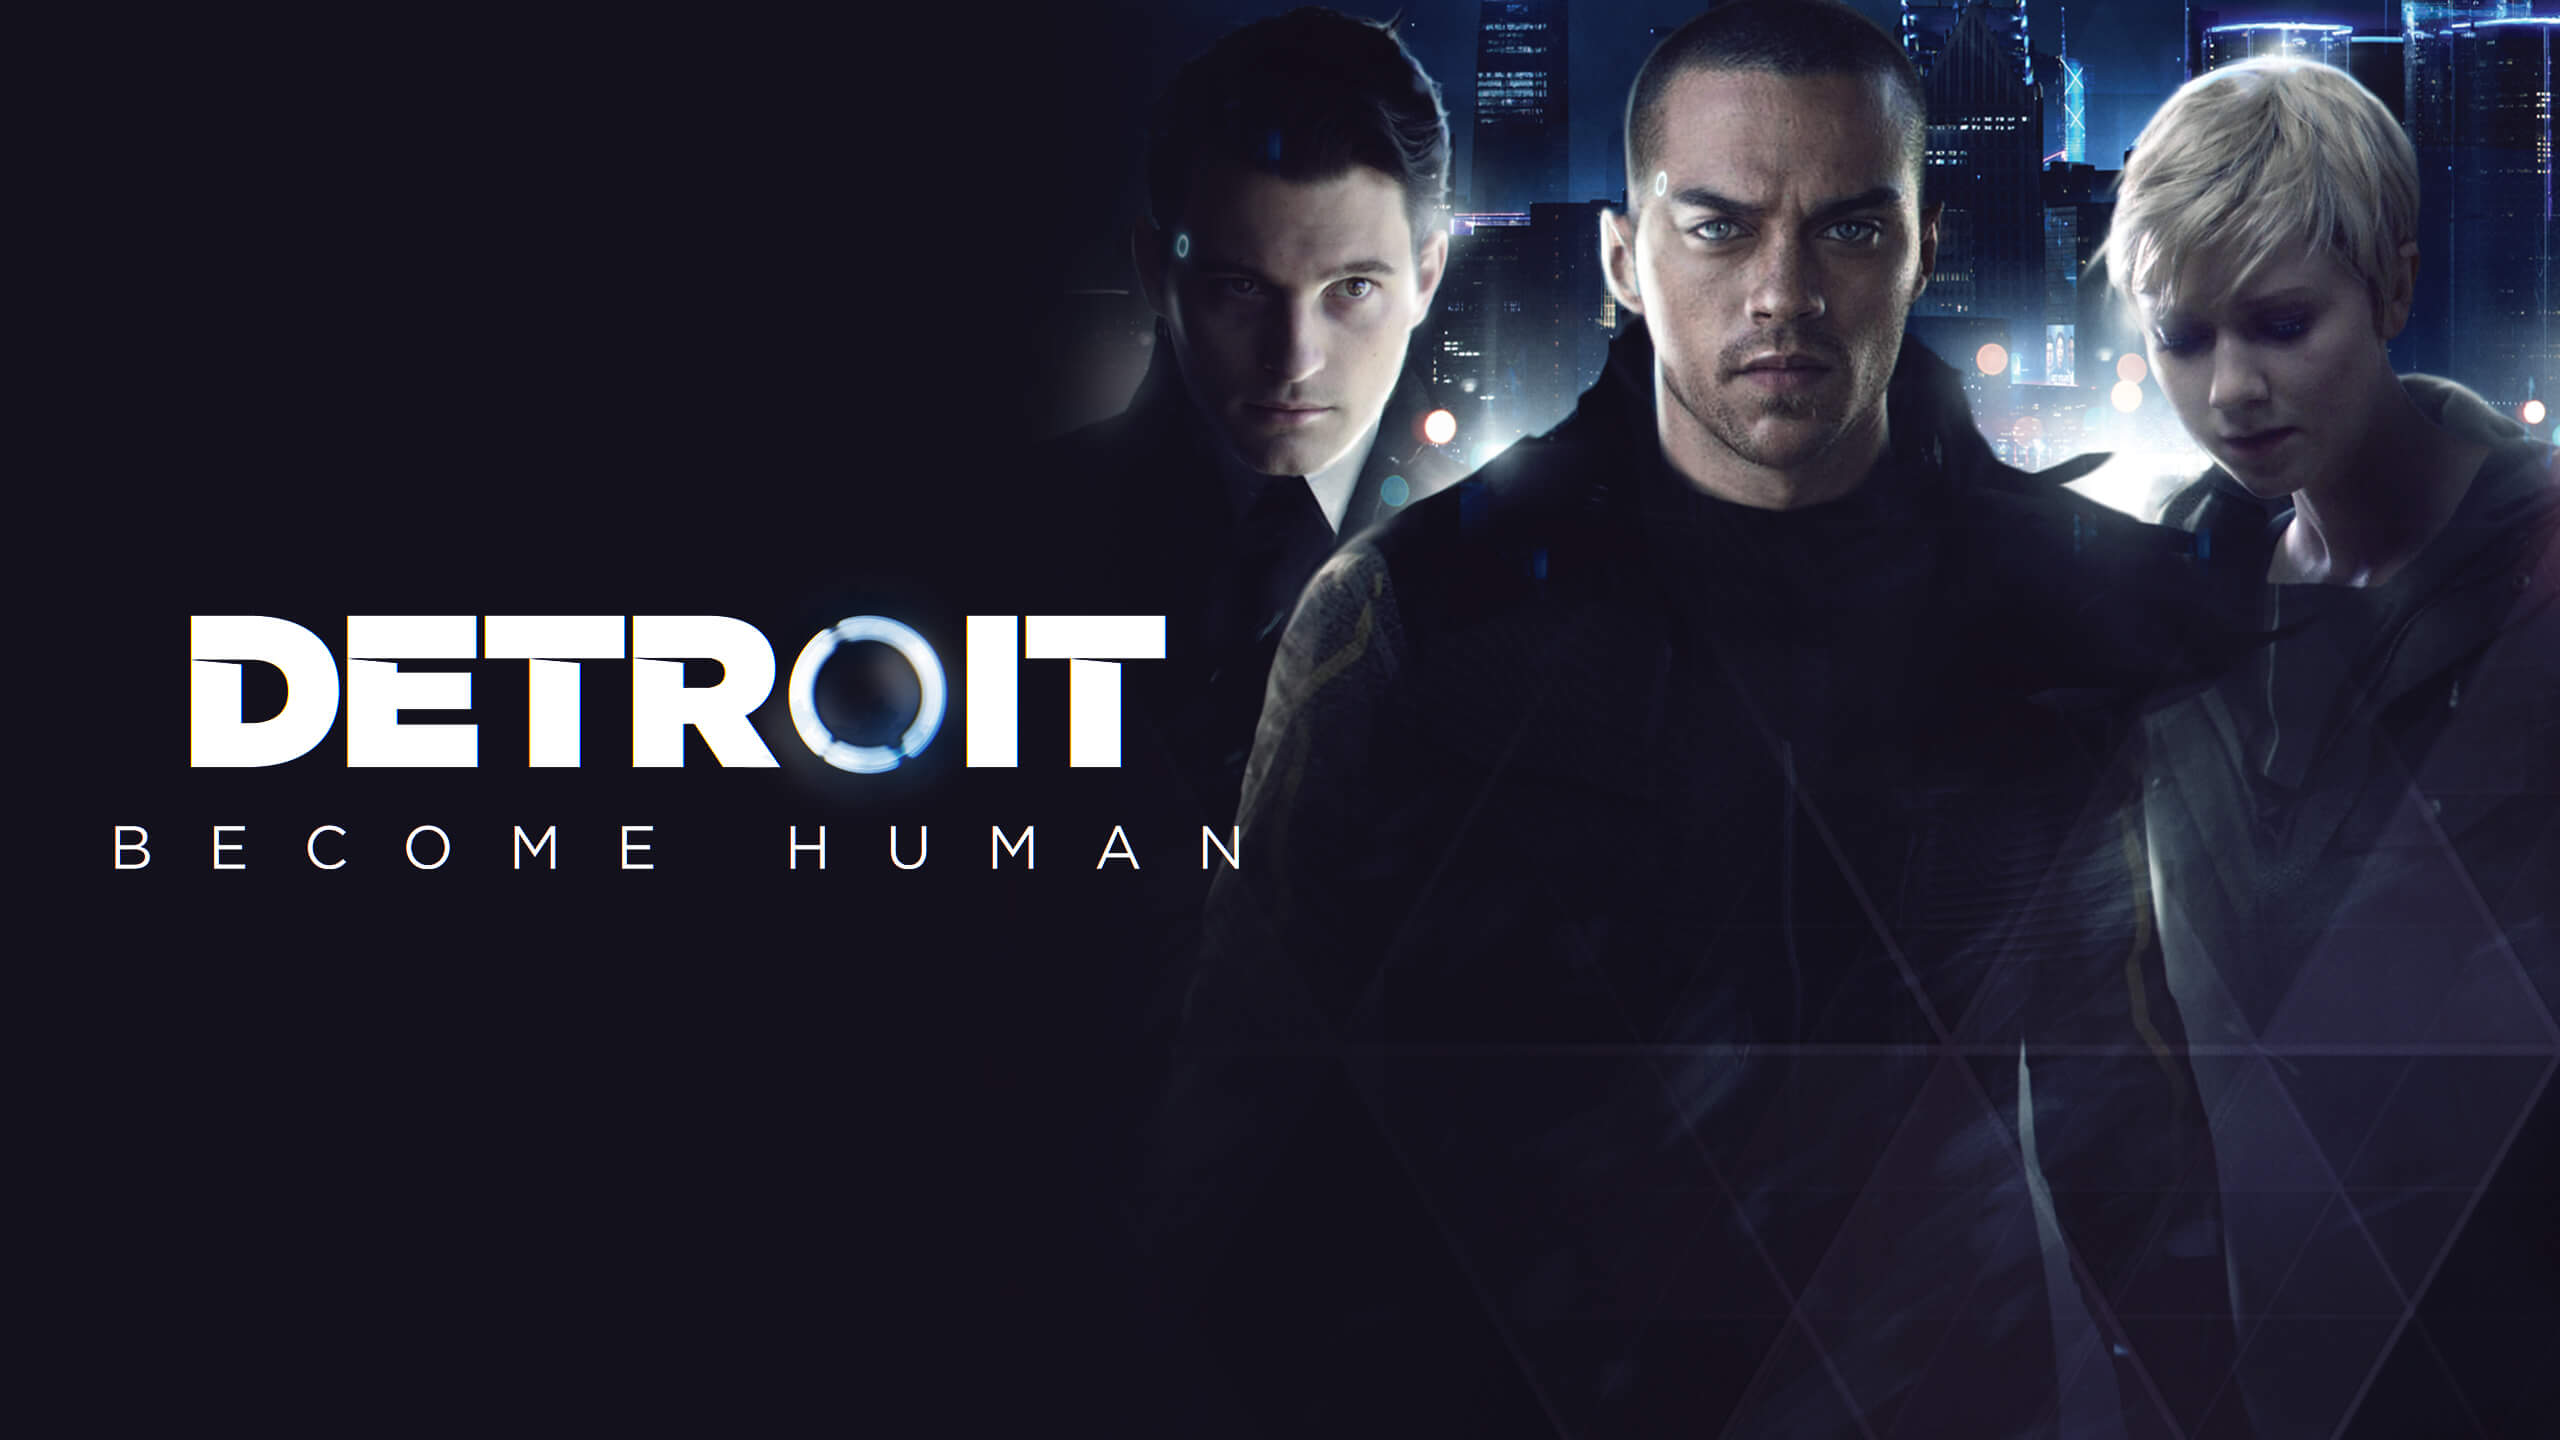 What does it mean to be human? Pre-purchase Detroit: Become Human and prepare to see the world through the eyes of an android in this gripping narrative by Quantic Dream.